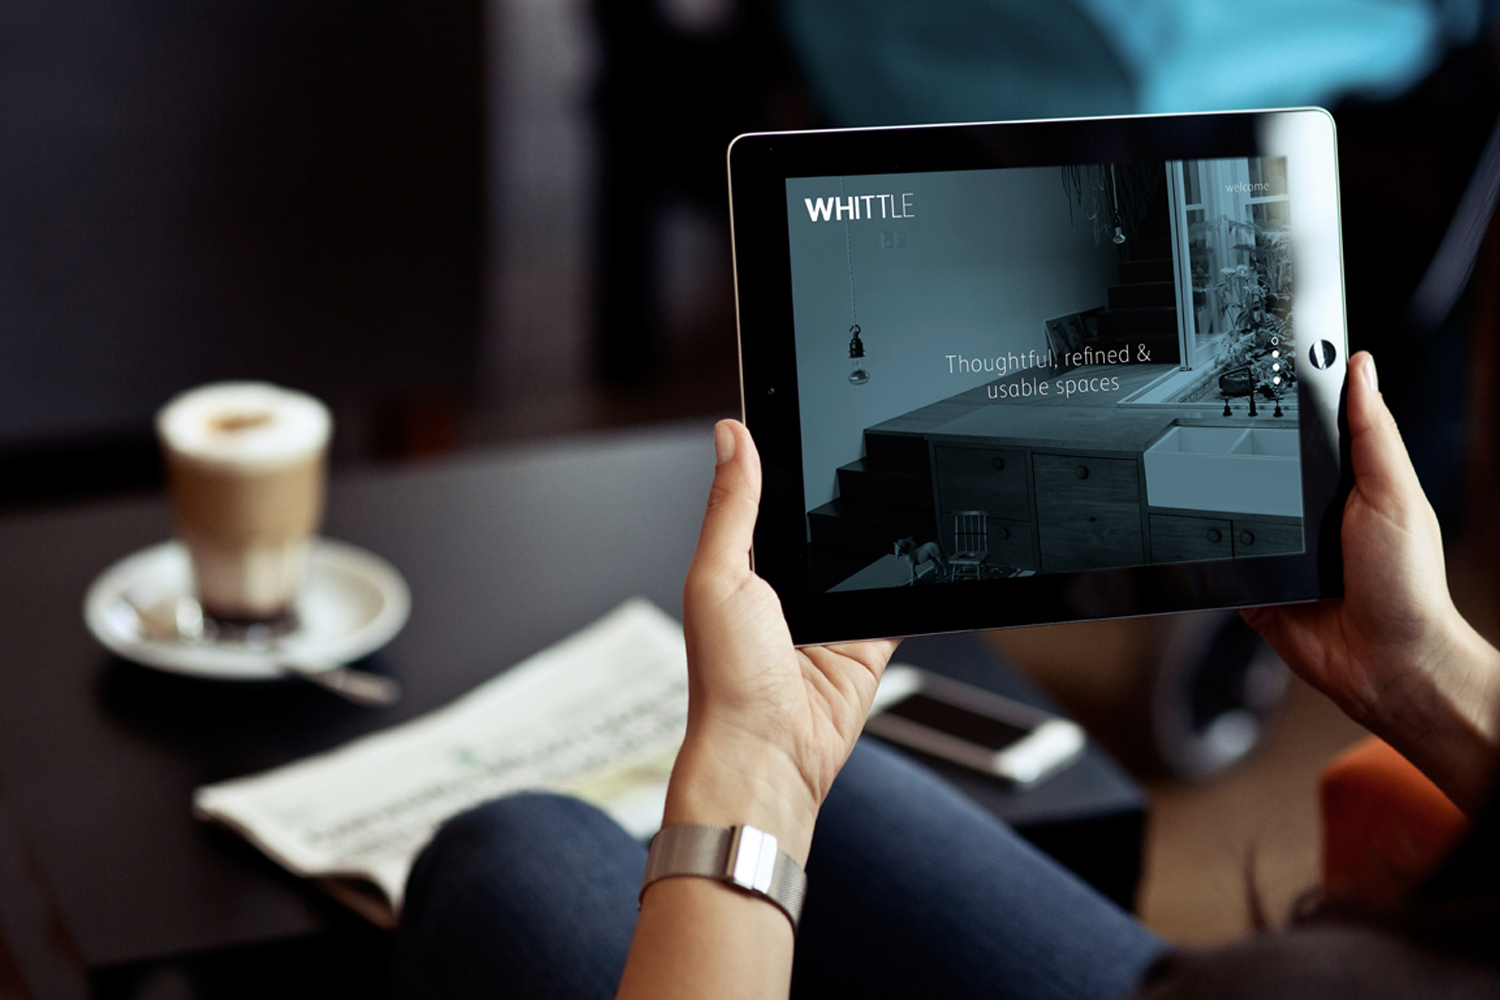 whittle-architects-6-website-tablet